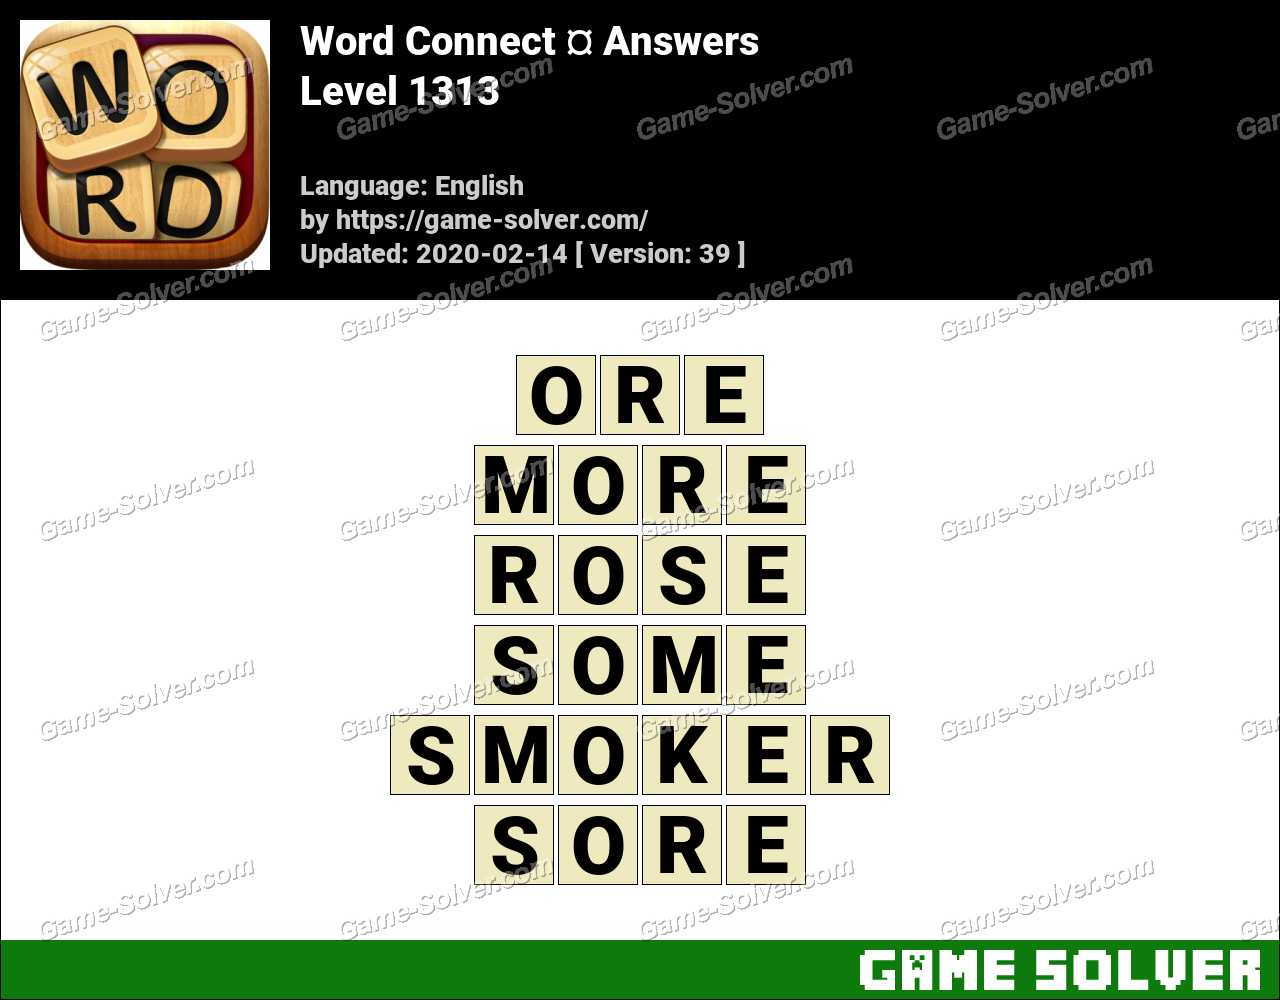 Word Connect Level 1313 Answers